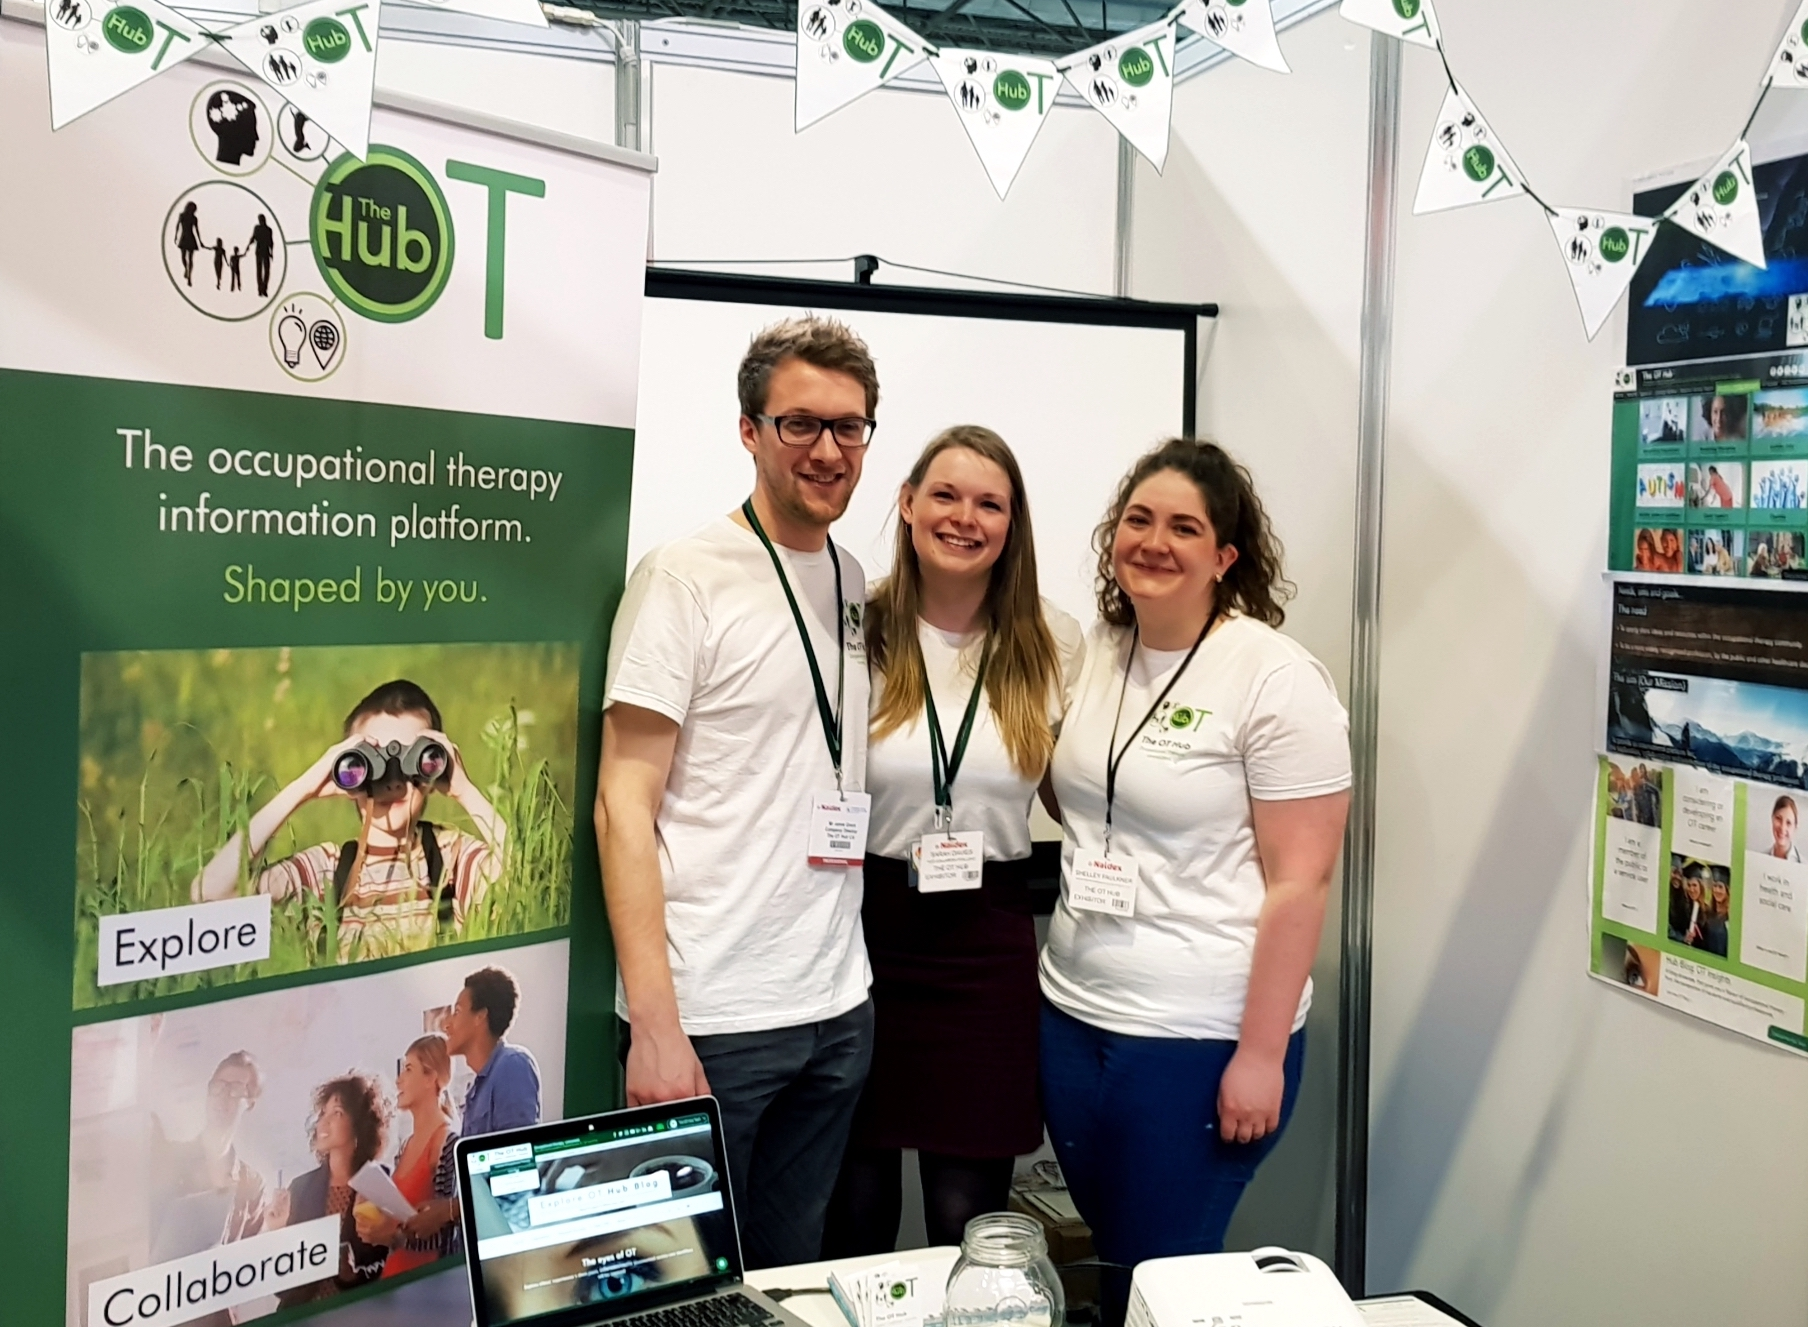 Jamie, Sarah Shelley The OT Hub (Naidex 2018)